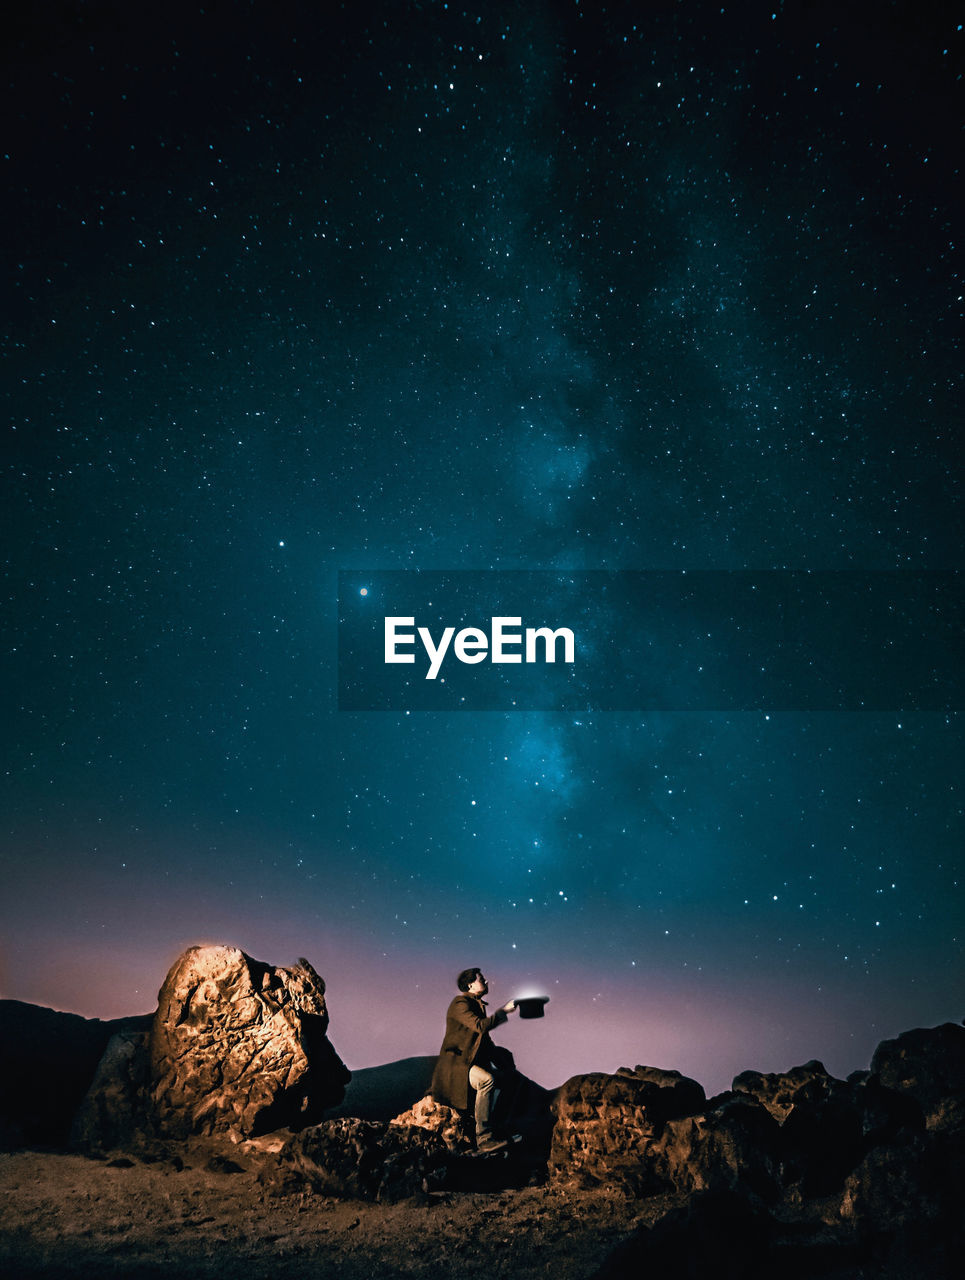 MAN SITTING ON ROCK AGAINST STAR FIELD AT NIGHT